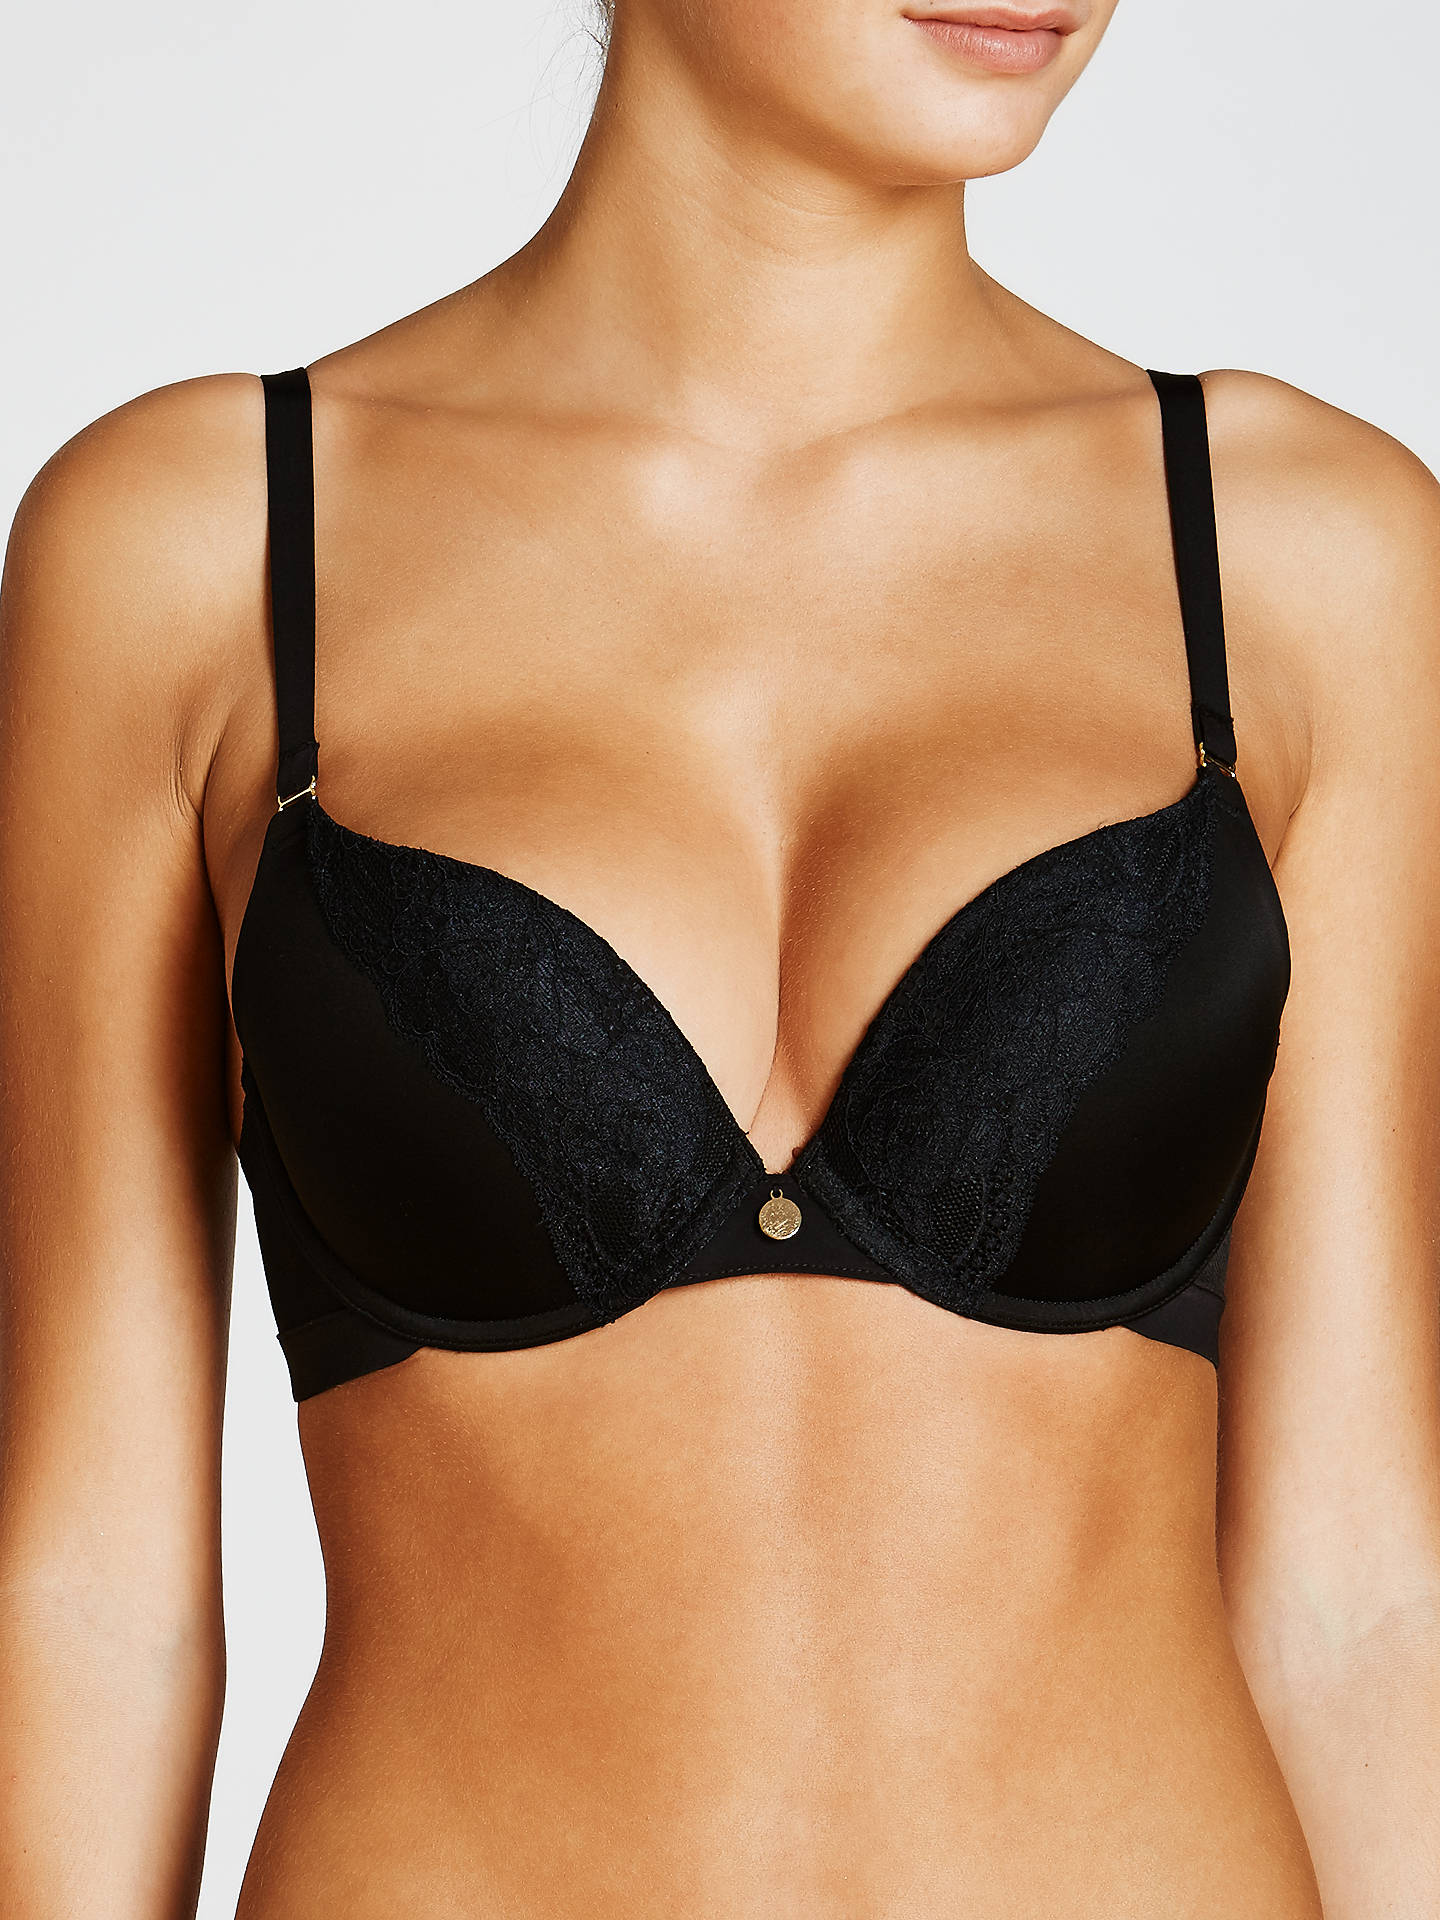 BuyJohn Lewis & Partners Roxanne Underwired Push Up Bra, Black, 30C Online at johnlewis.com